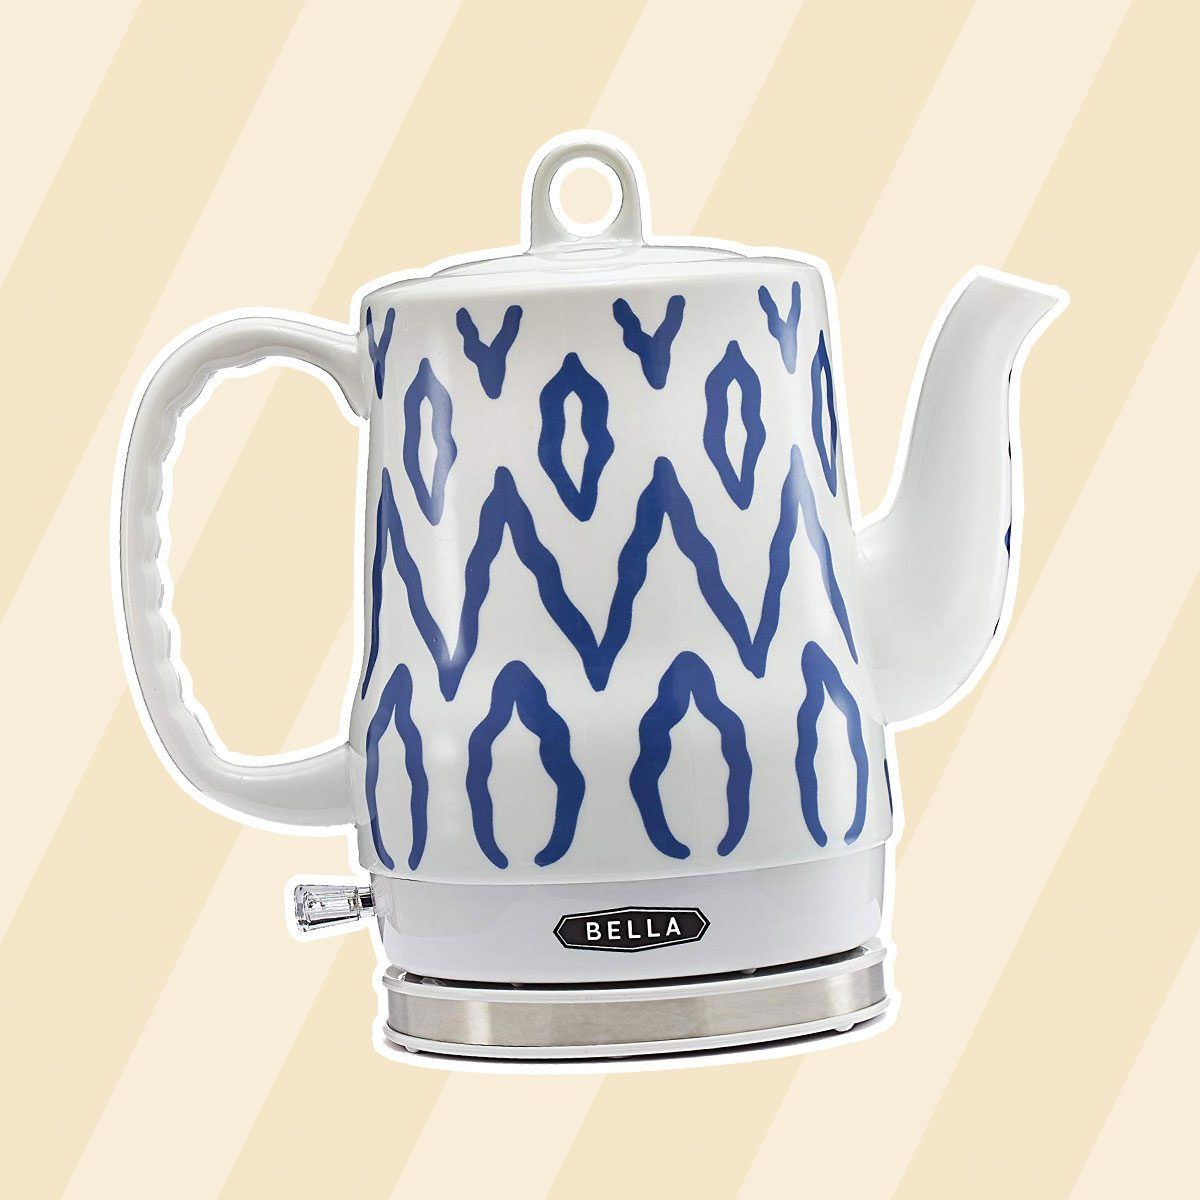 BELLA 13724 Electric Tea Kettle, 1.2 LITER, Blue Aztec